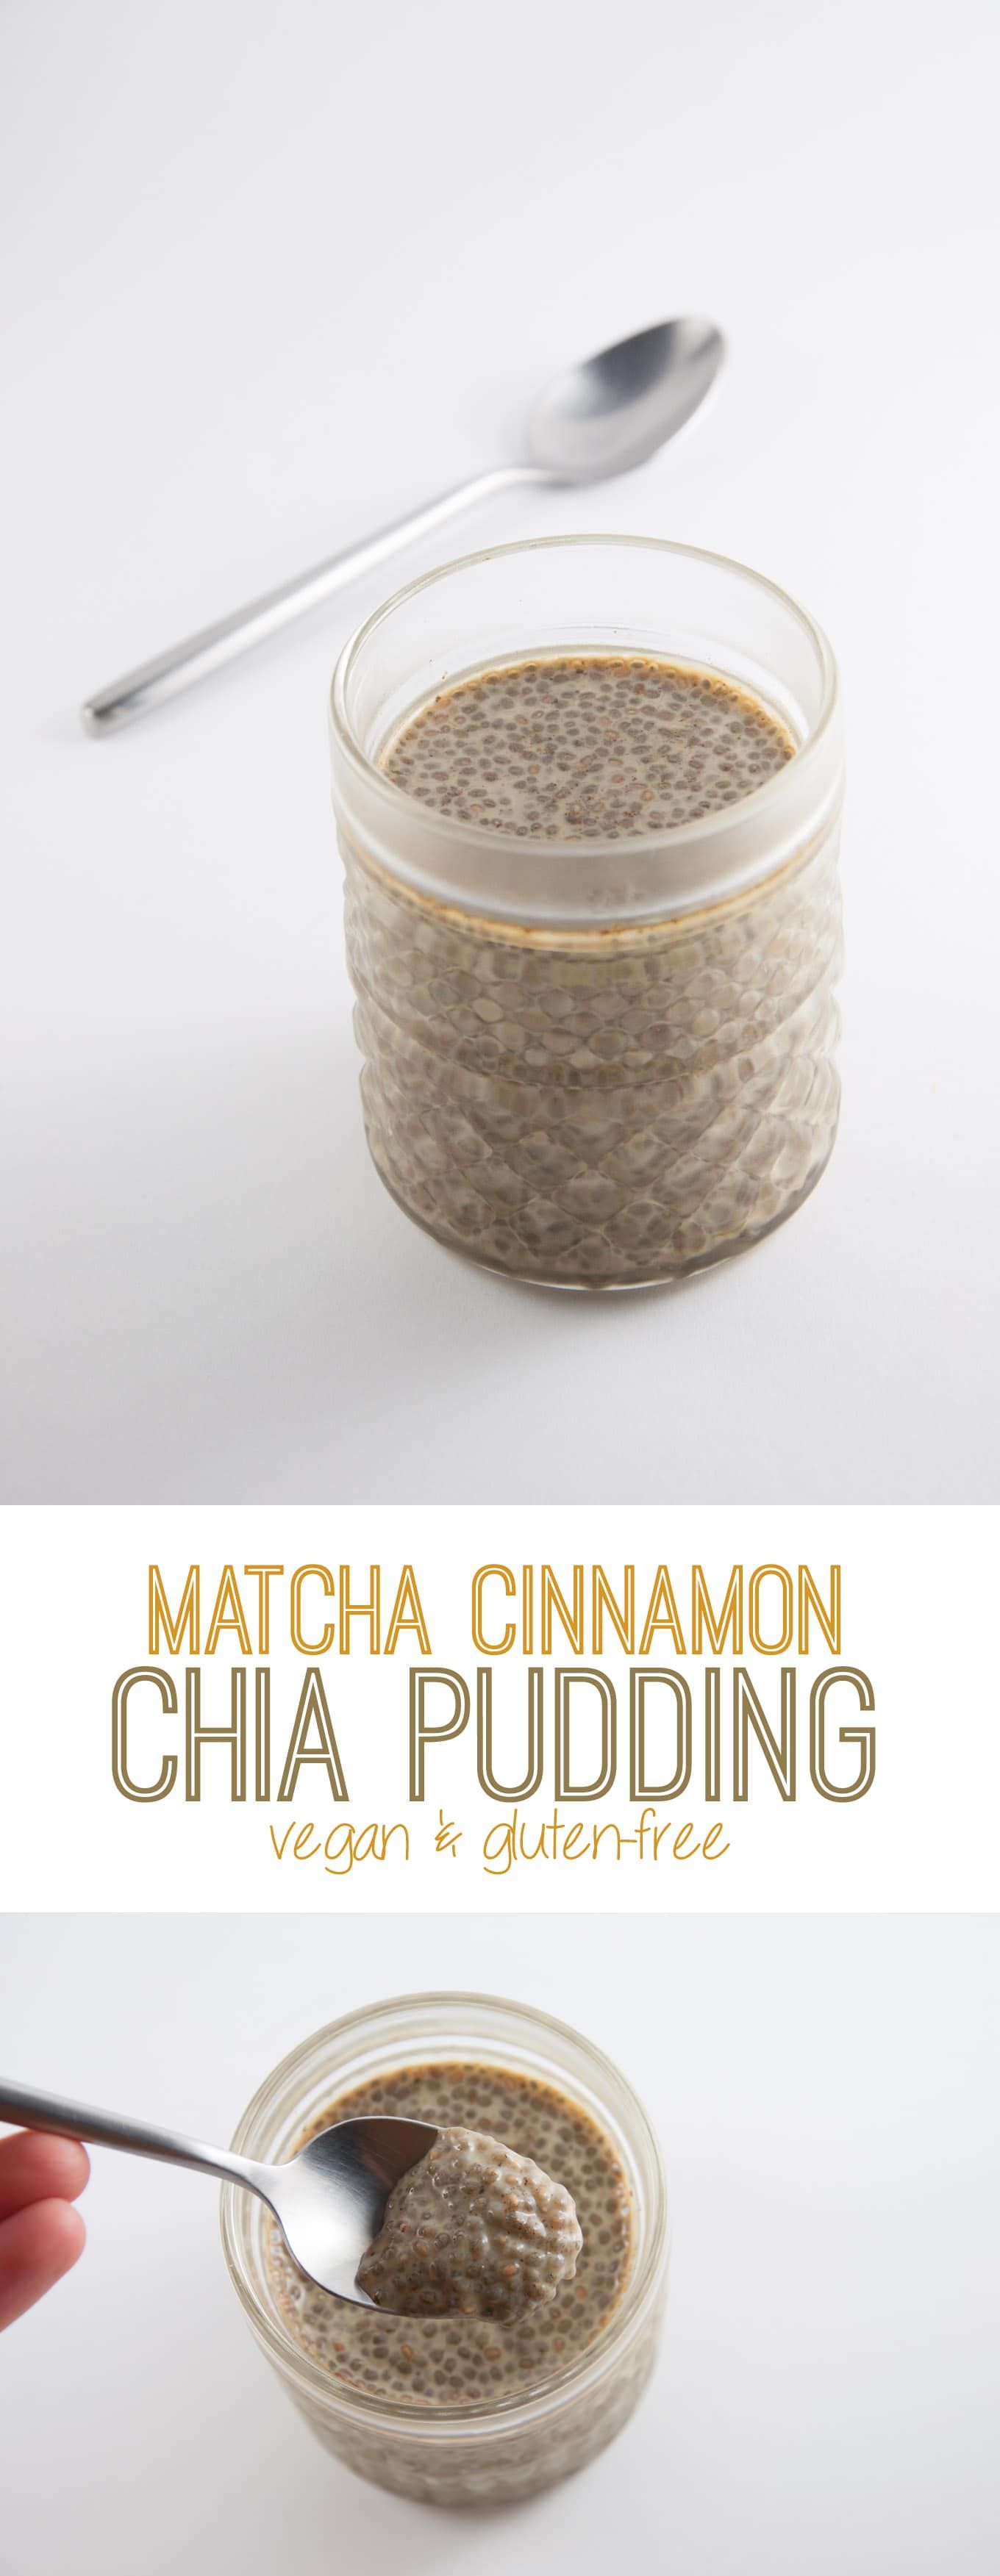 This Matcha Cinnamon Chia Pudding is perfect for breakfast! It fills you for hours without making you feel super stuffed.